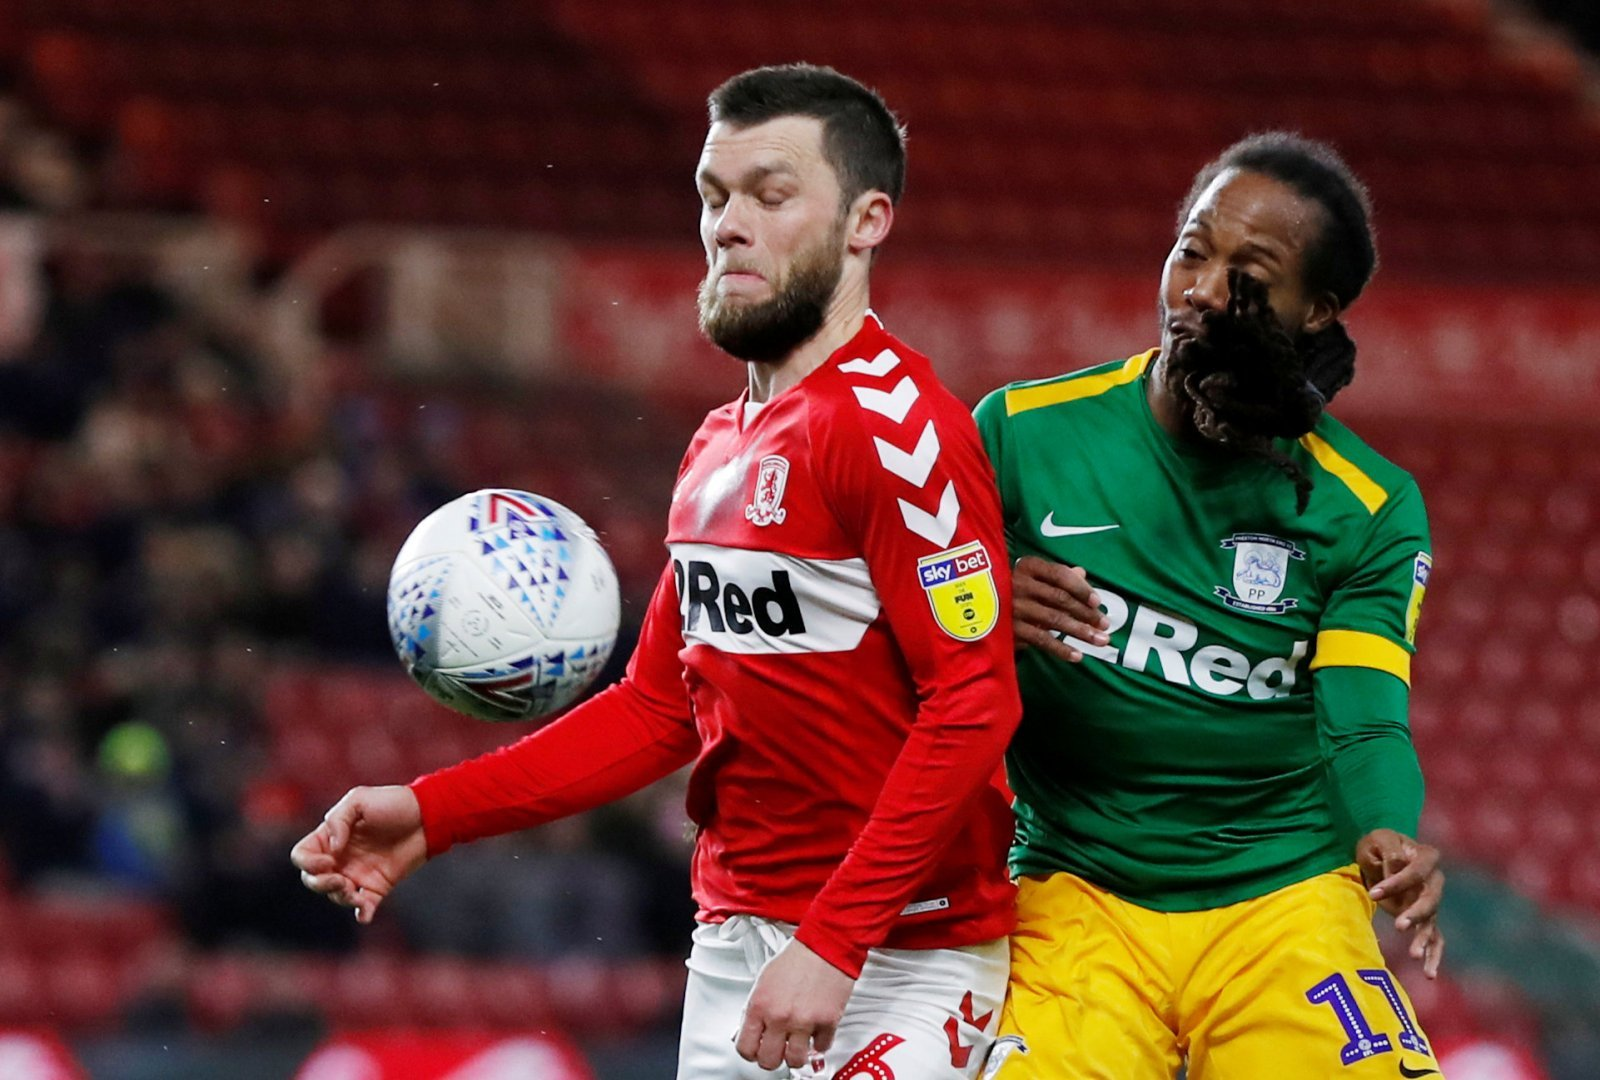 Middlesbrough: Jonny Howson facing several weeks out after surgery